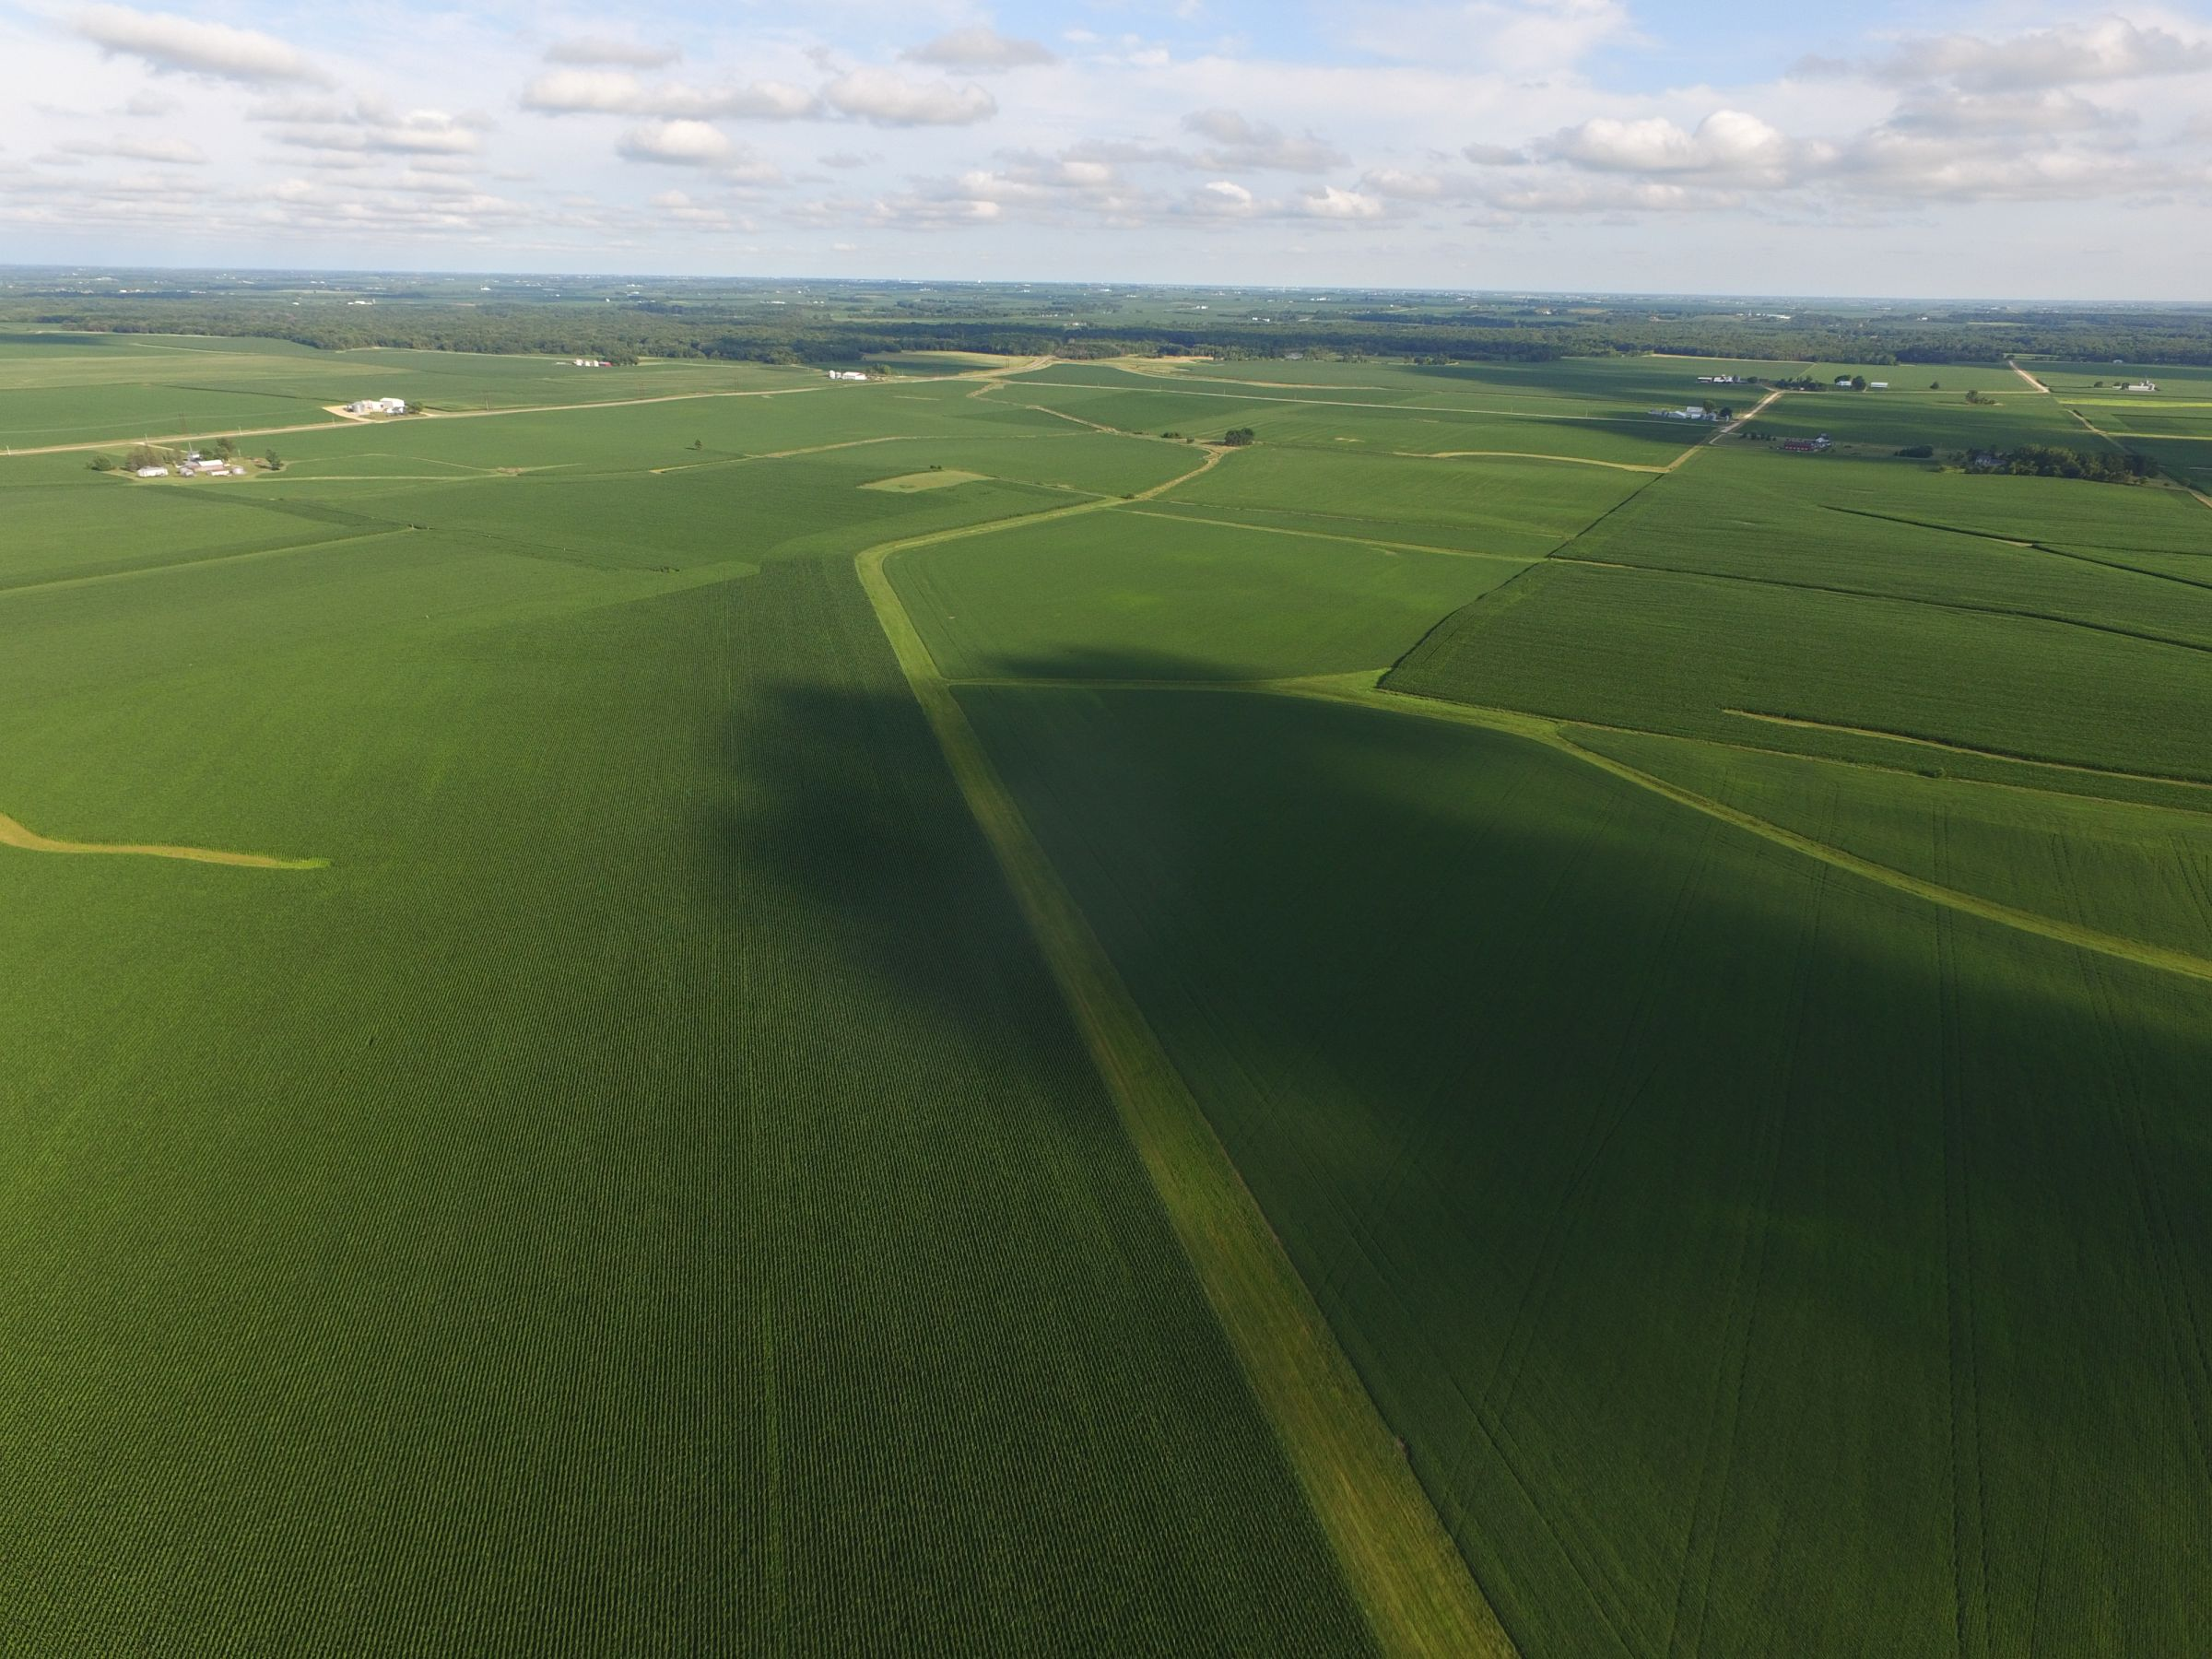 auctions-land-clinton-county-iowa-210-acres-listing-number-15628-1-2021-07-12-143508.JPG